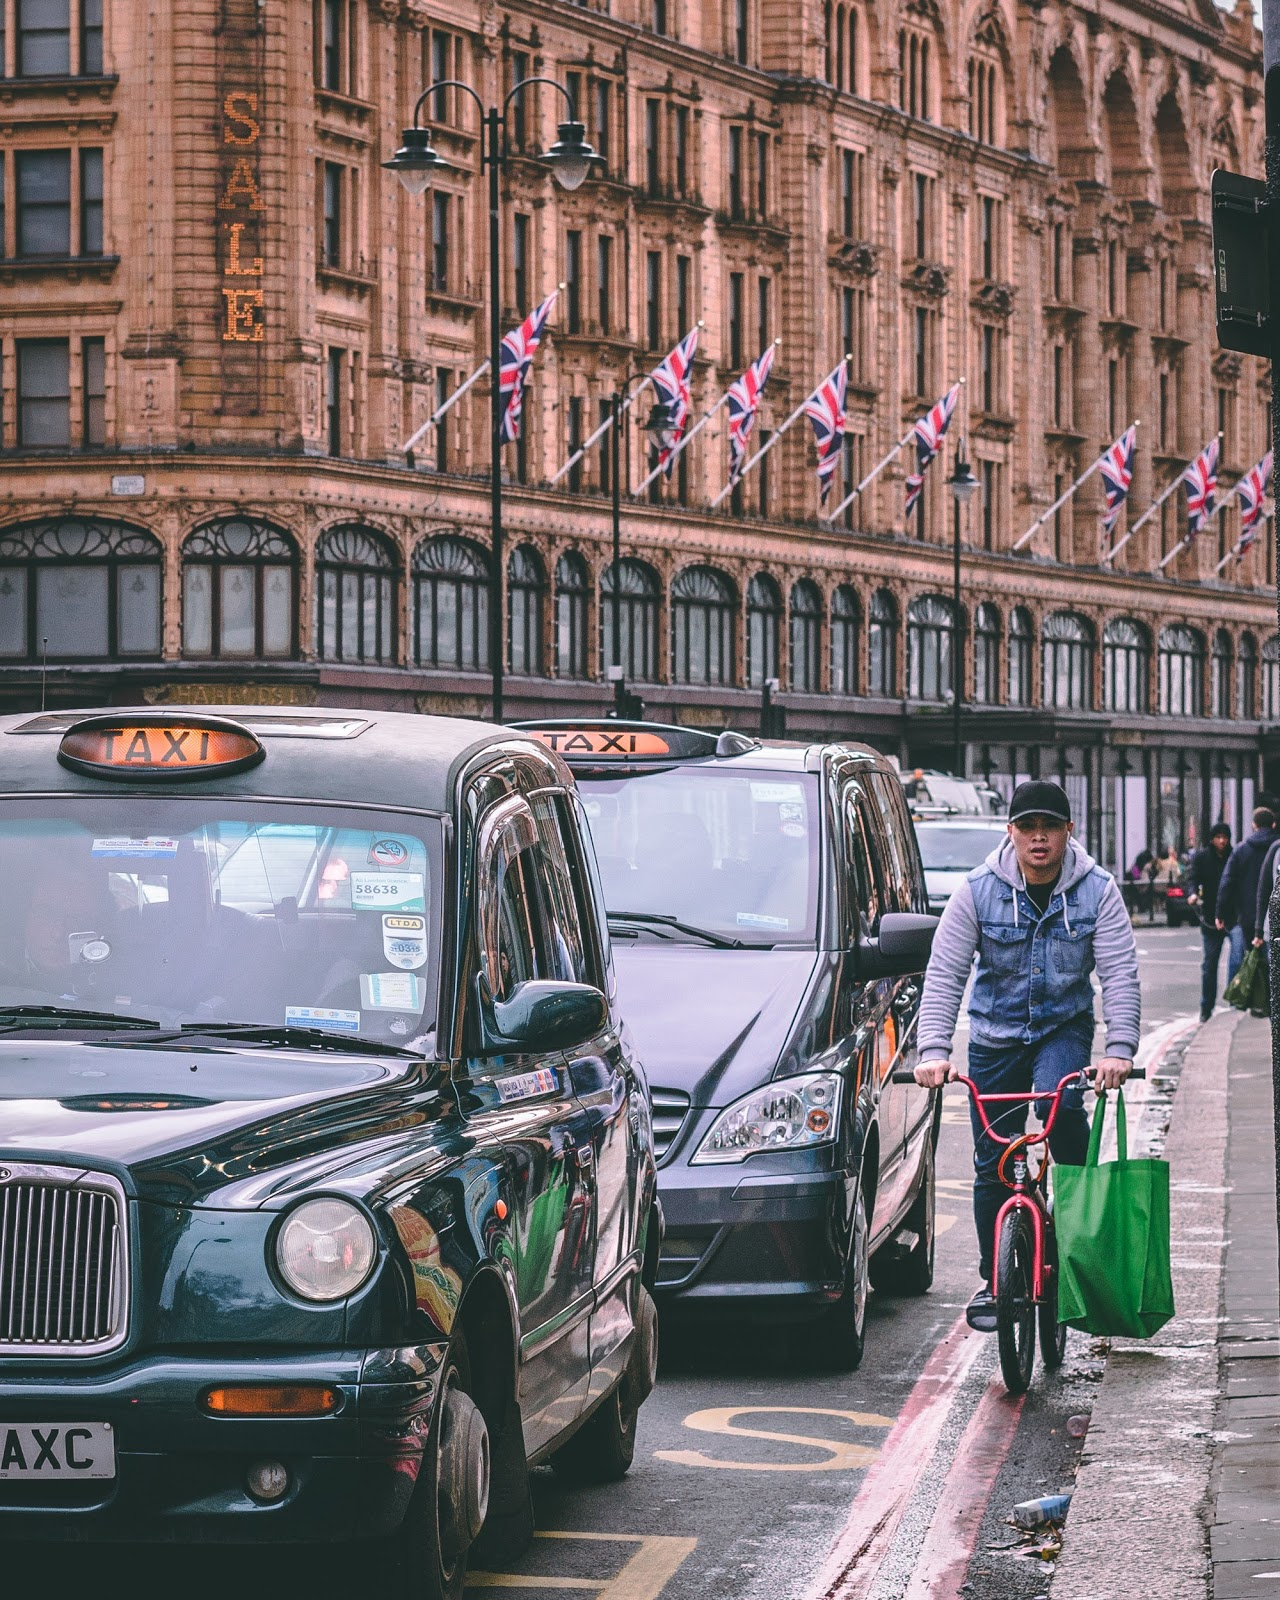 London Taxi1